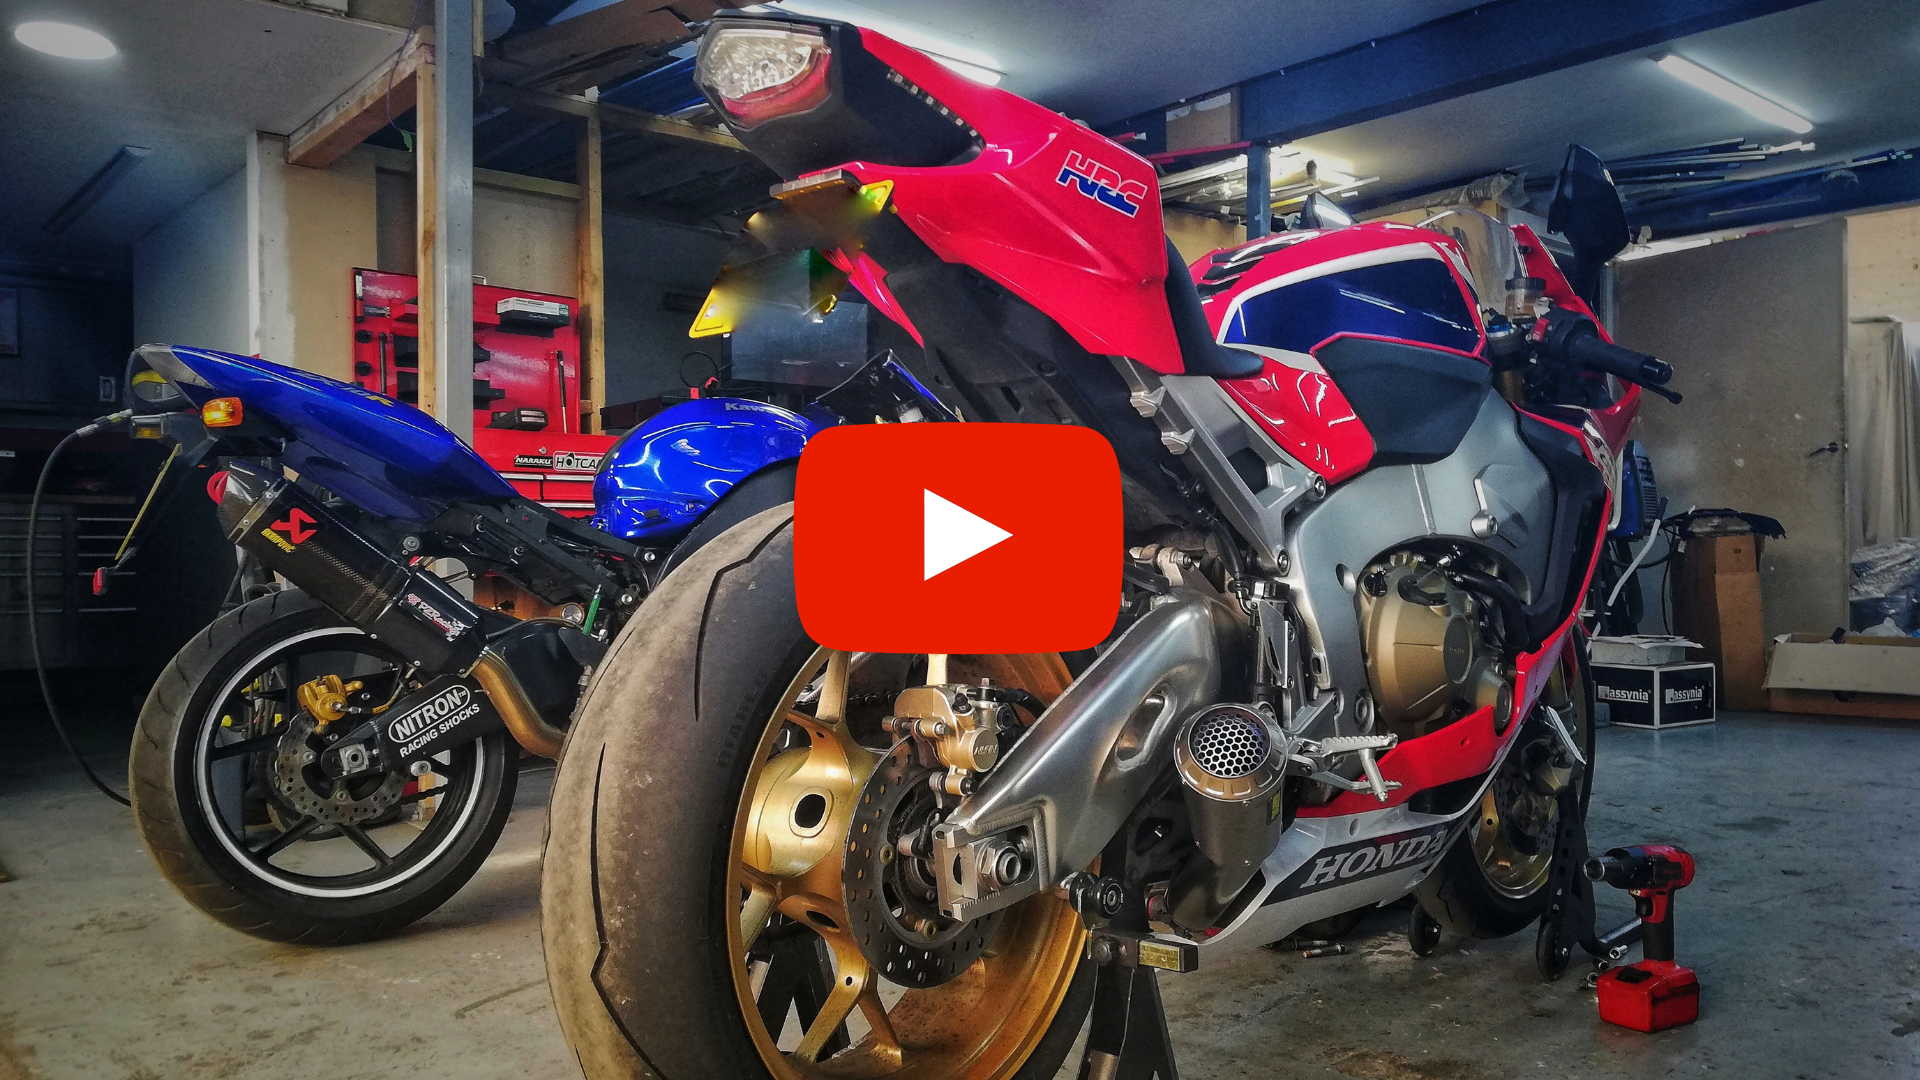 traxden motorcycles london honda cbr brakes